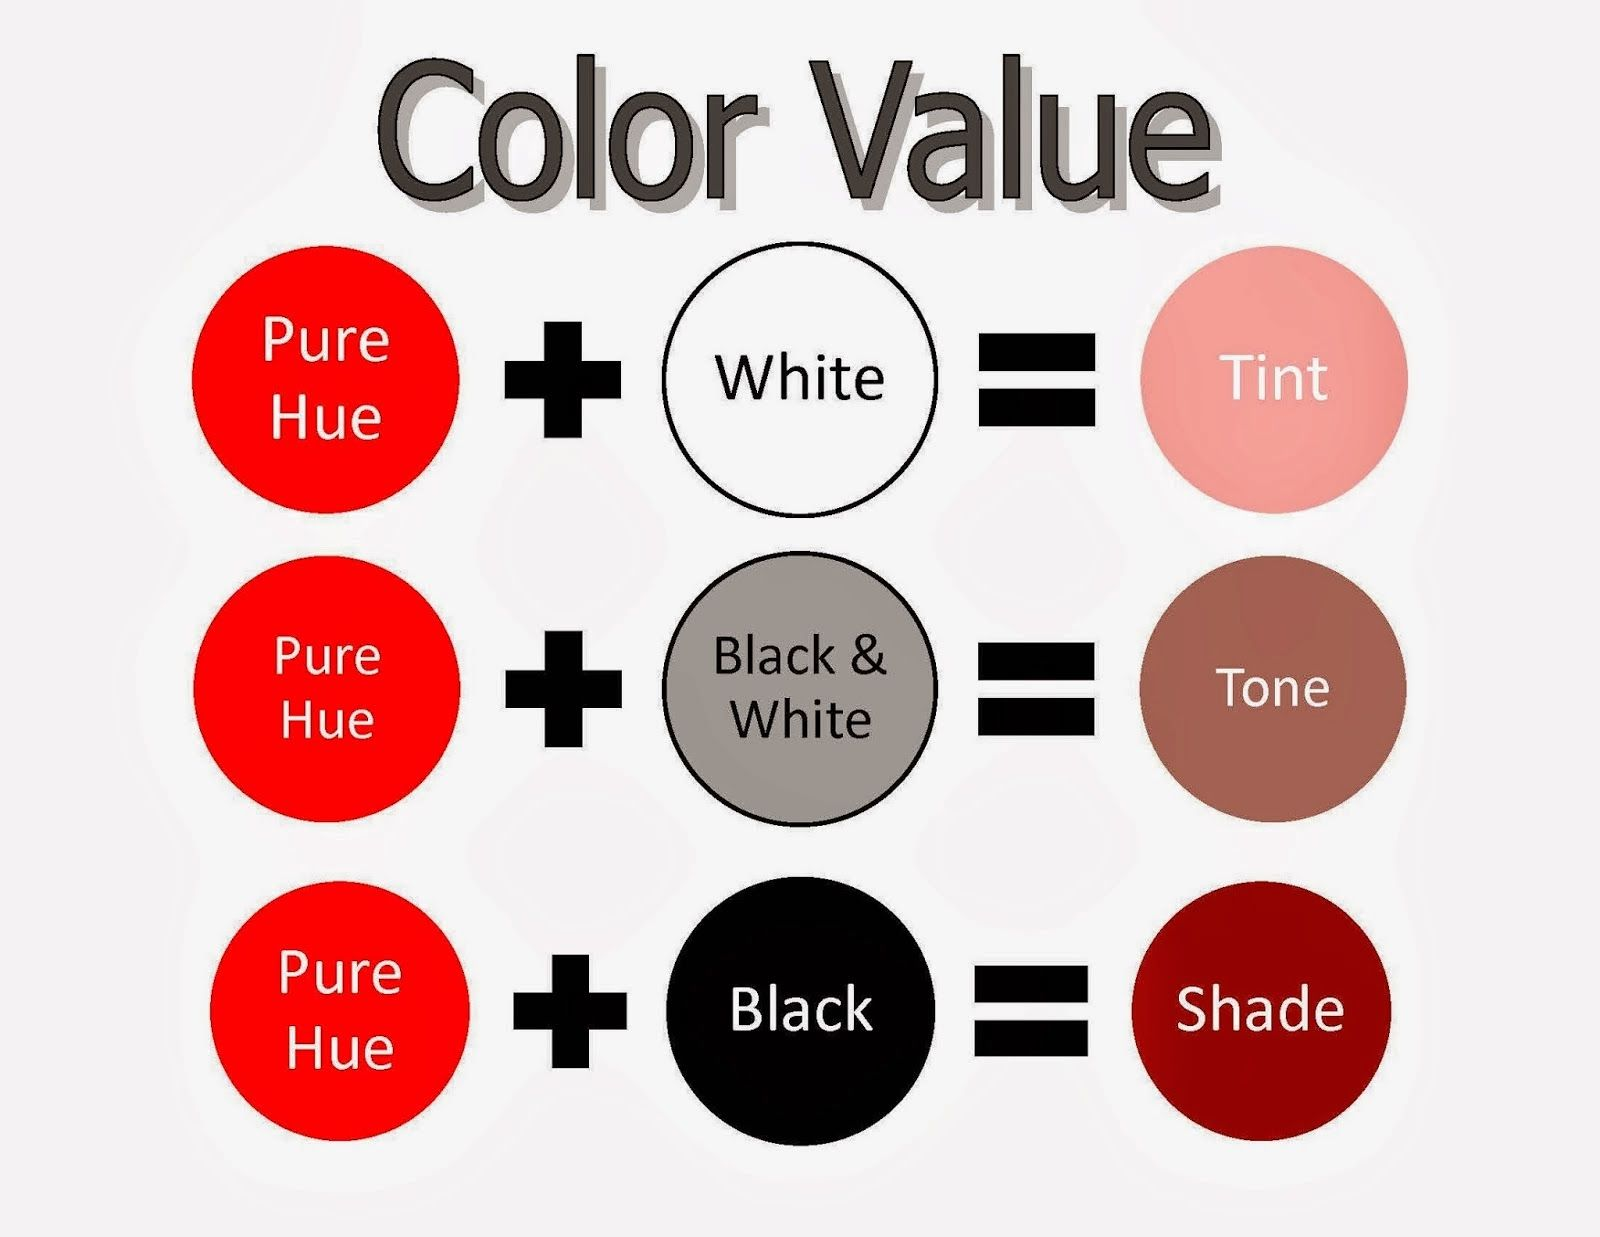 Hue Tint Tone Shade Color Theory 2 Color Mixing